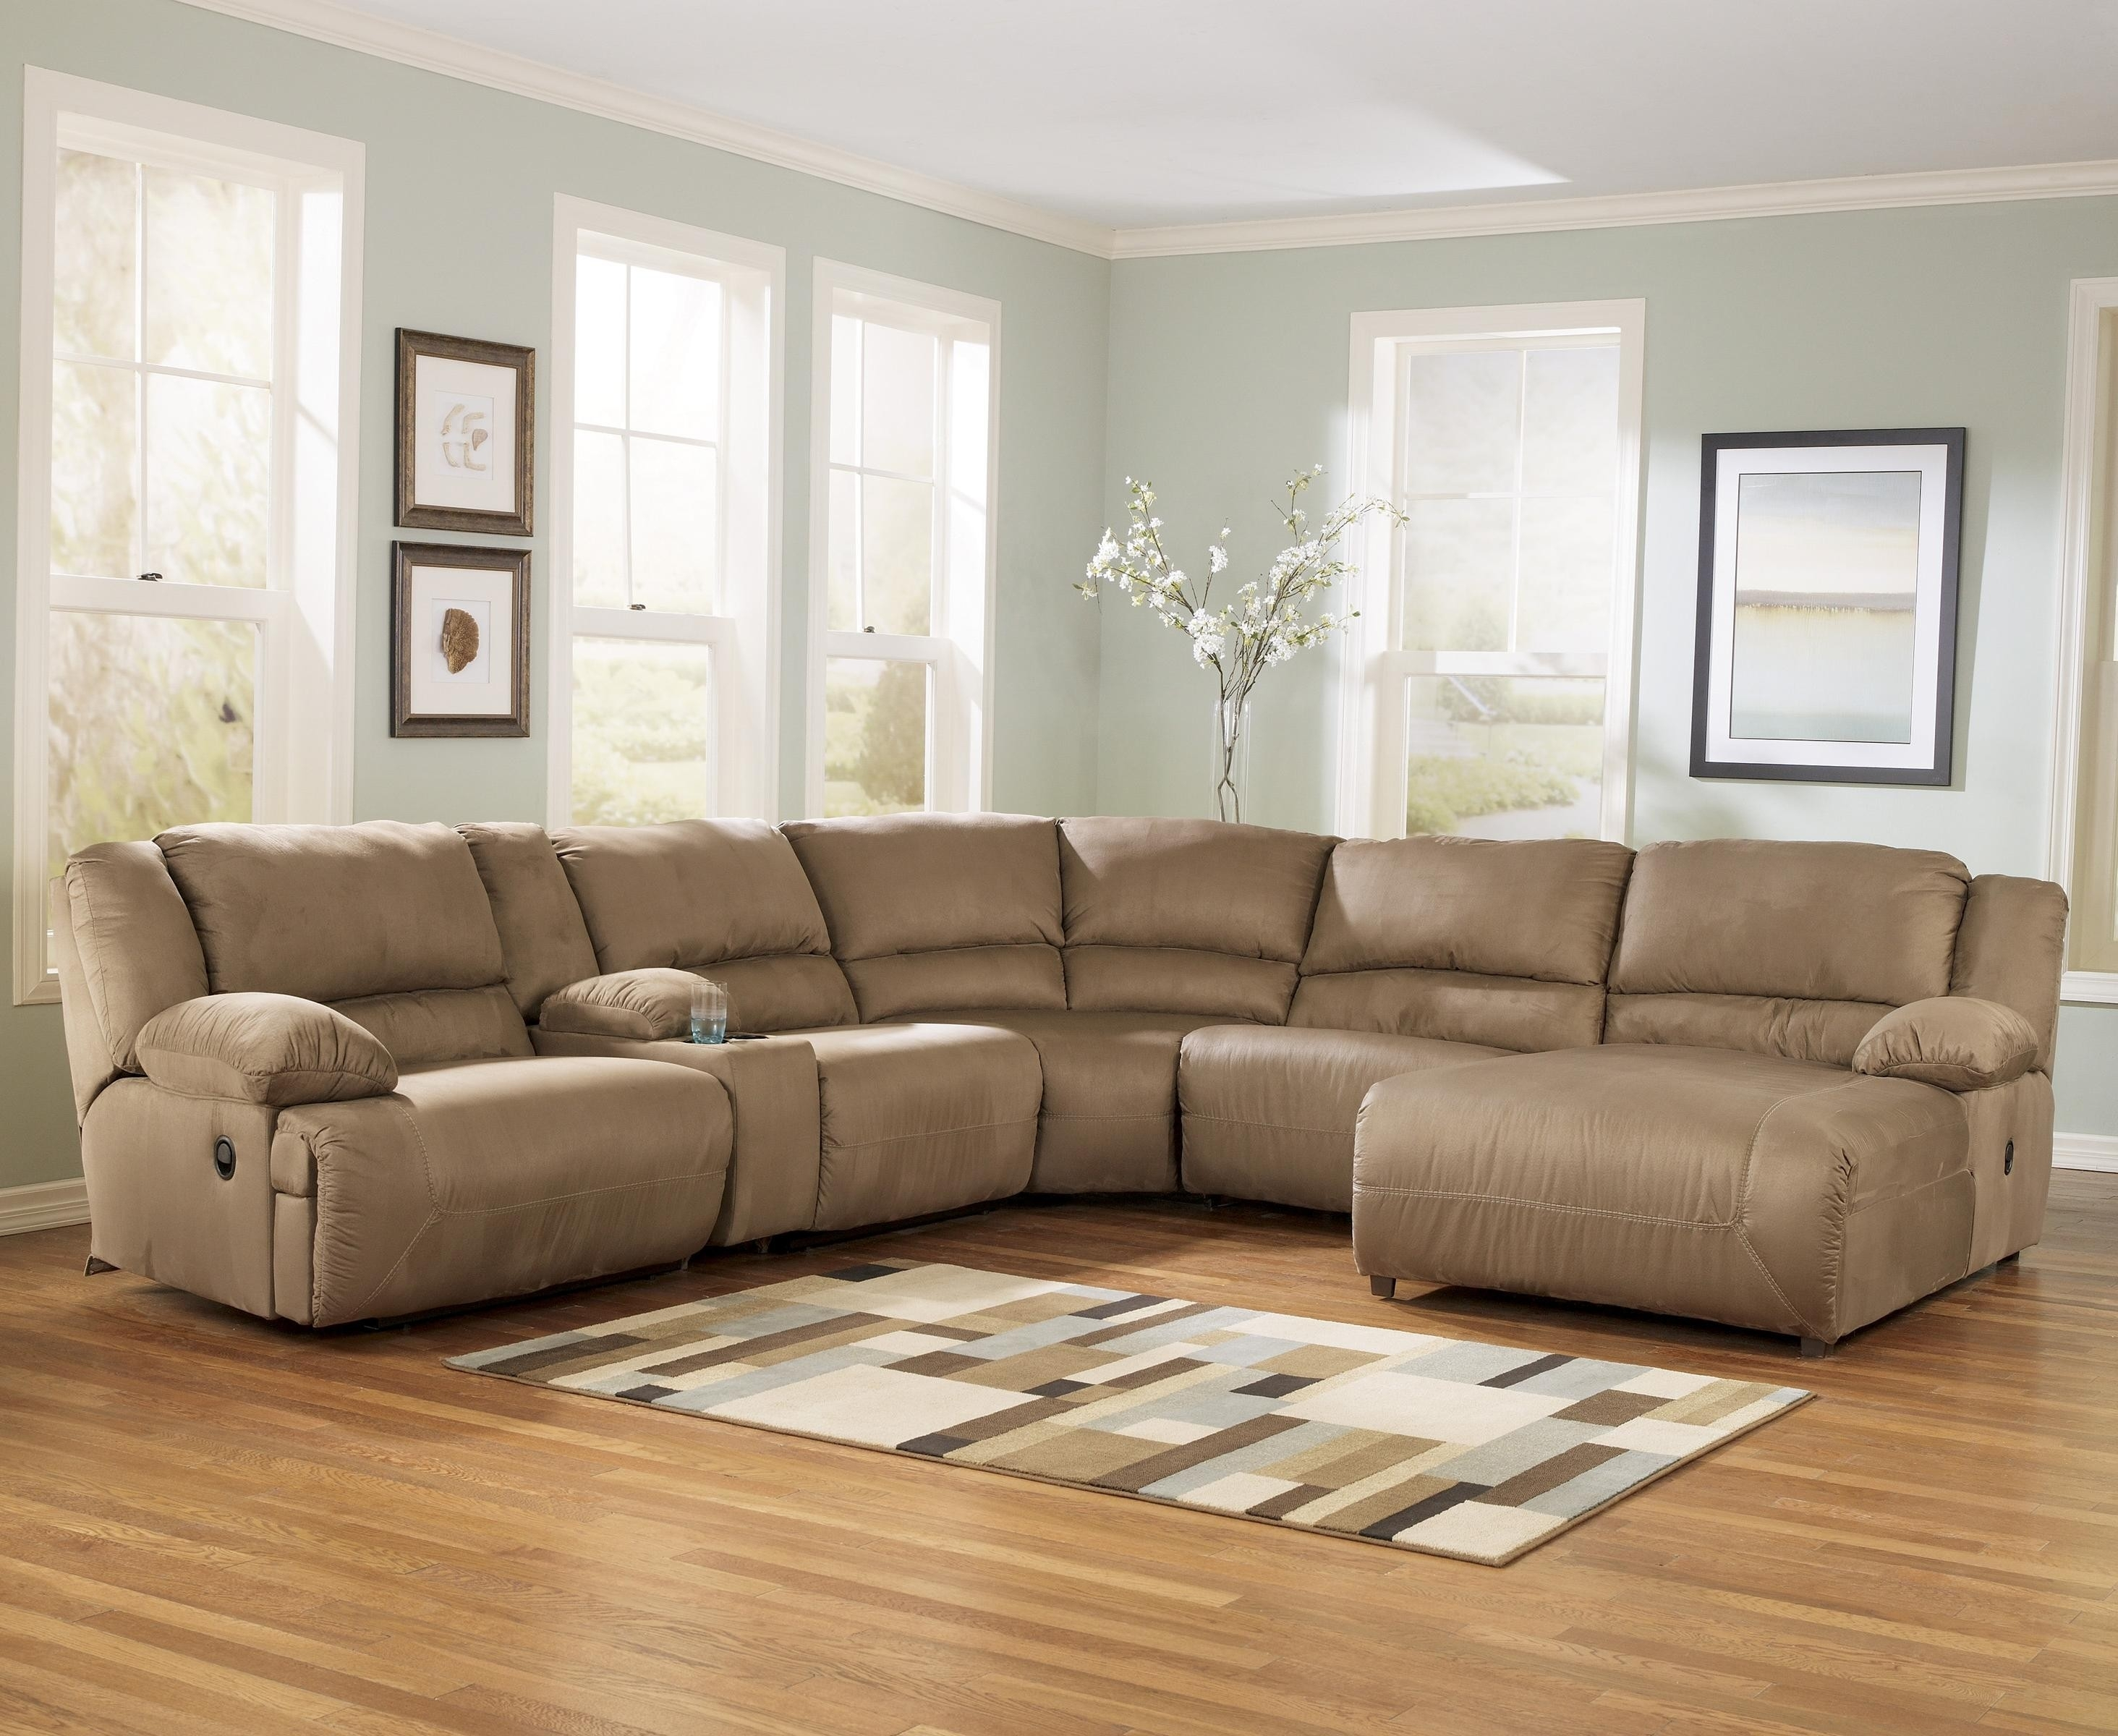 6 Piece Sectional Couch Marcus Grey W Power Headrest Usb Living Intended For Marcus Grey 6 Piece Sectionals With  Power Headrest & Usb (Image 2 of 25)